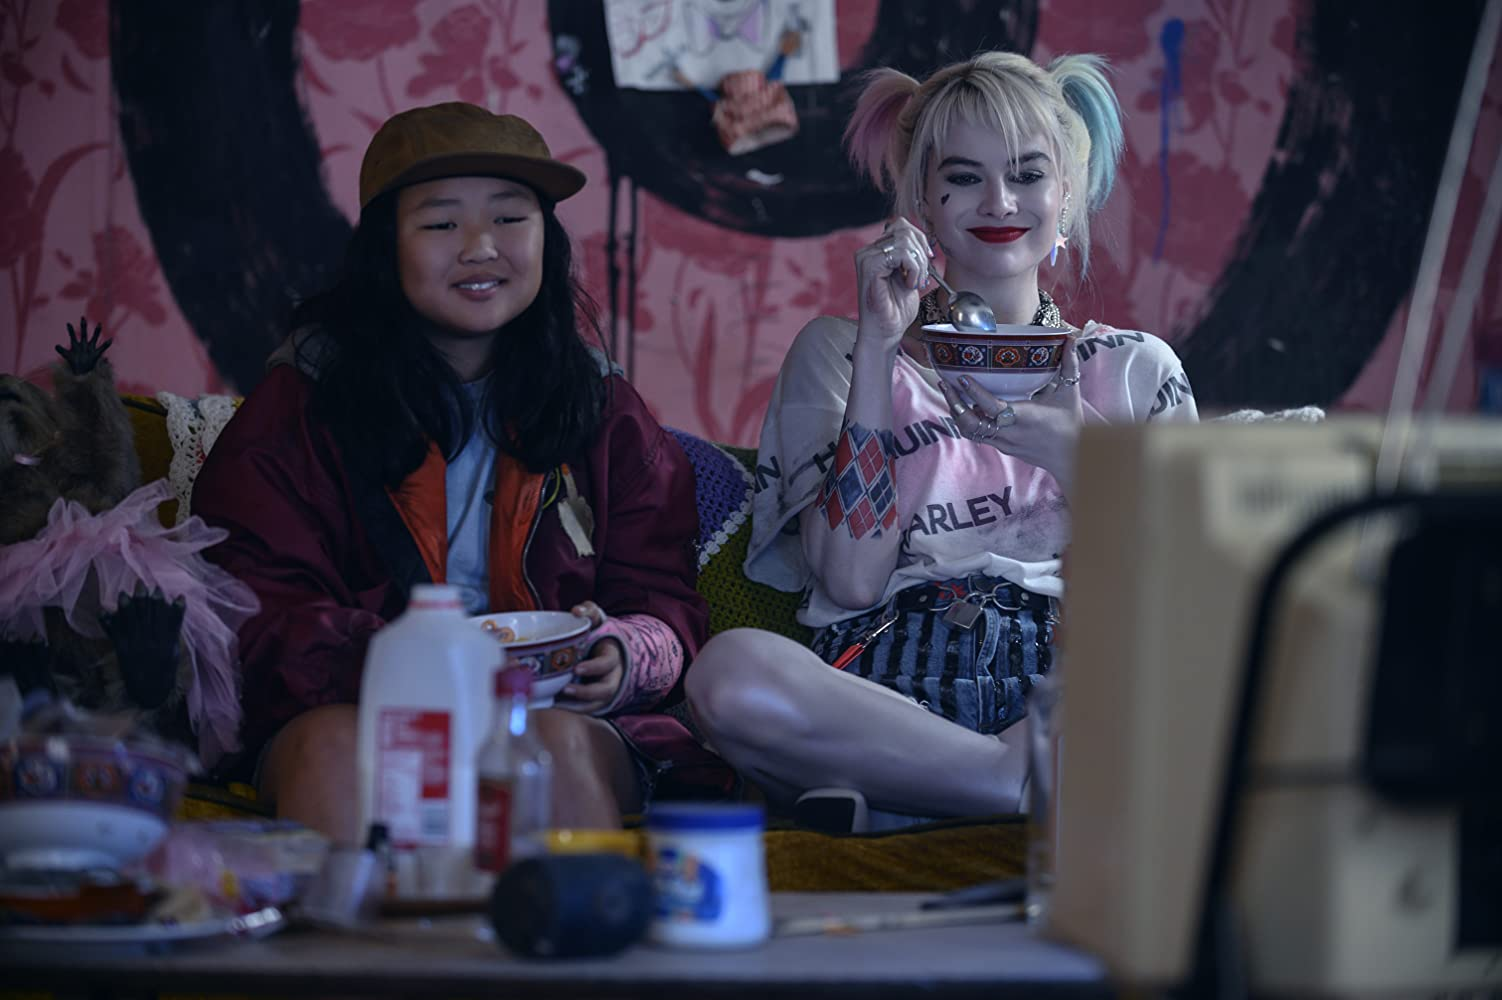 Margot Robbie and Ella Jay Basco in Birds of Prey: And the Fantabulous Emancipation of One Harley Quinn (2020)